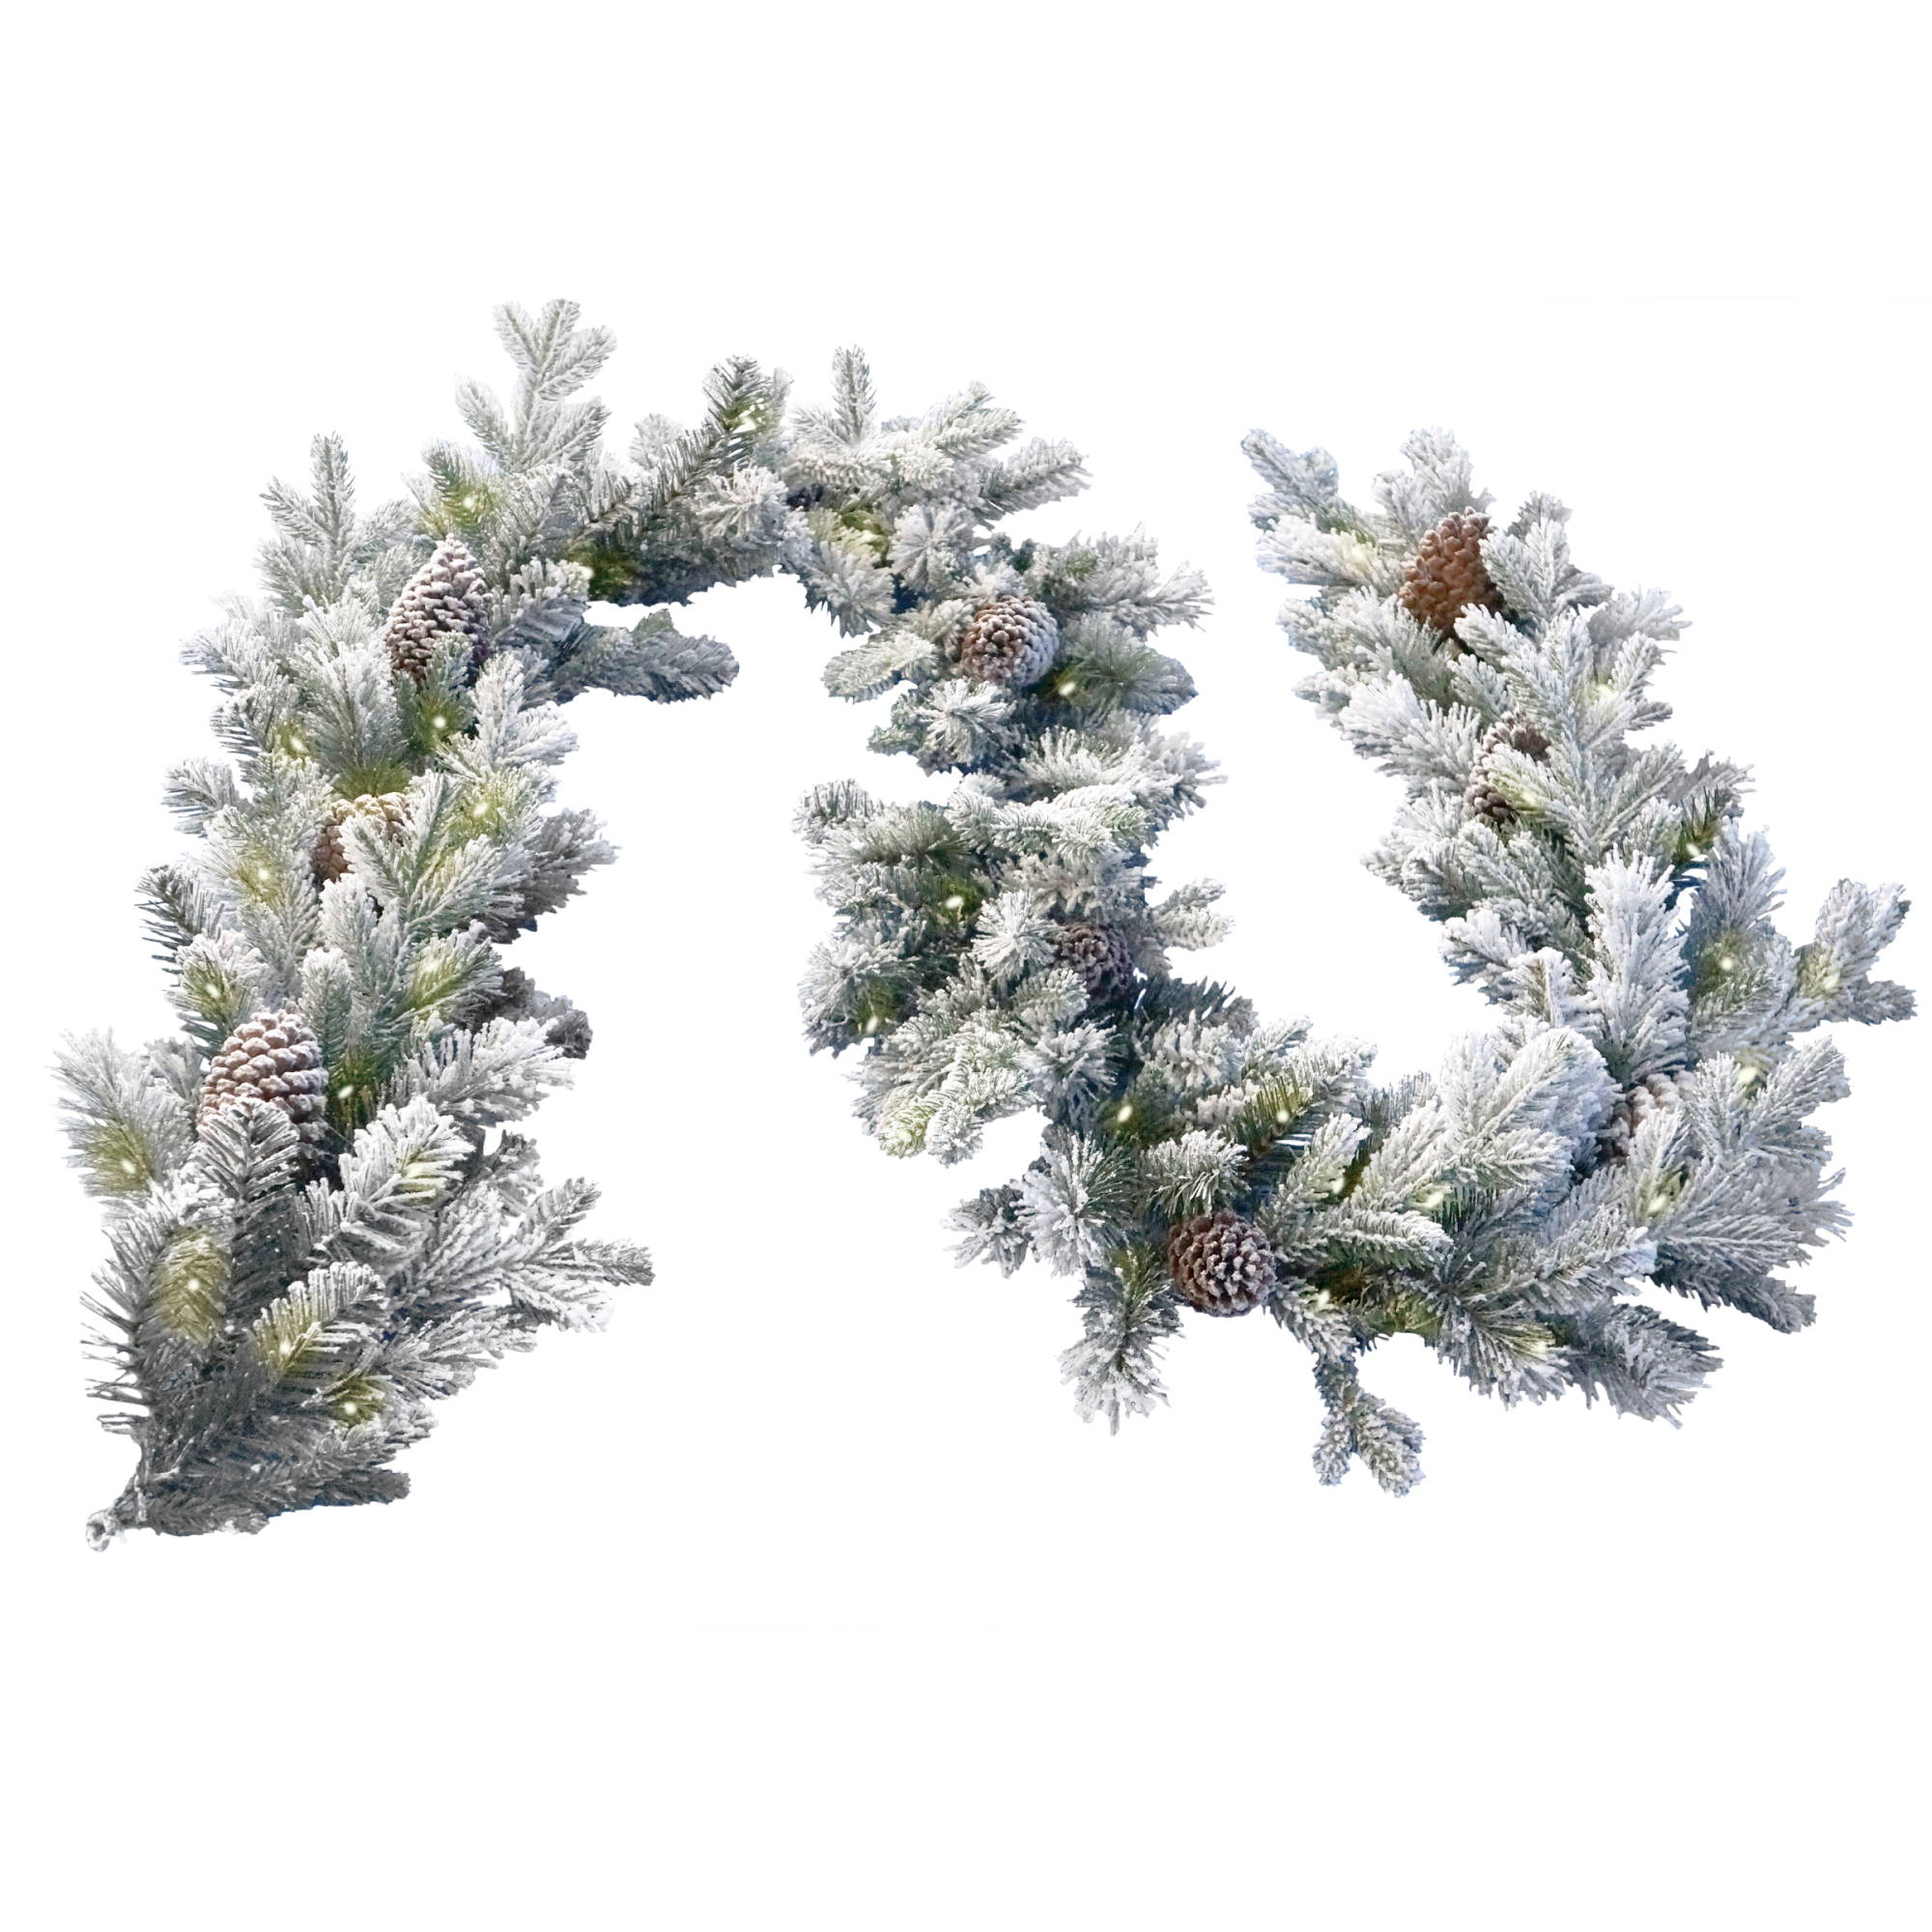 Snowy Dorchester Pine Christmas Garland - 9ft x 12in